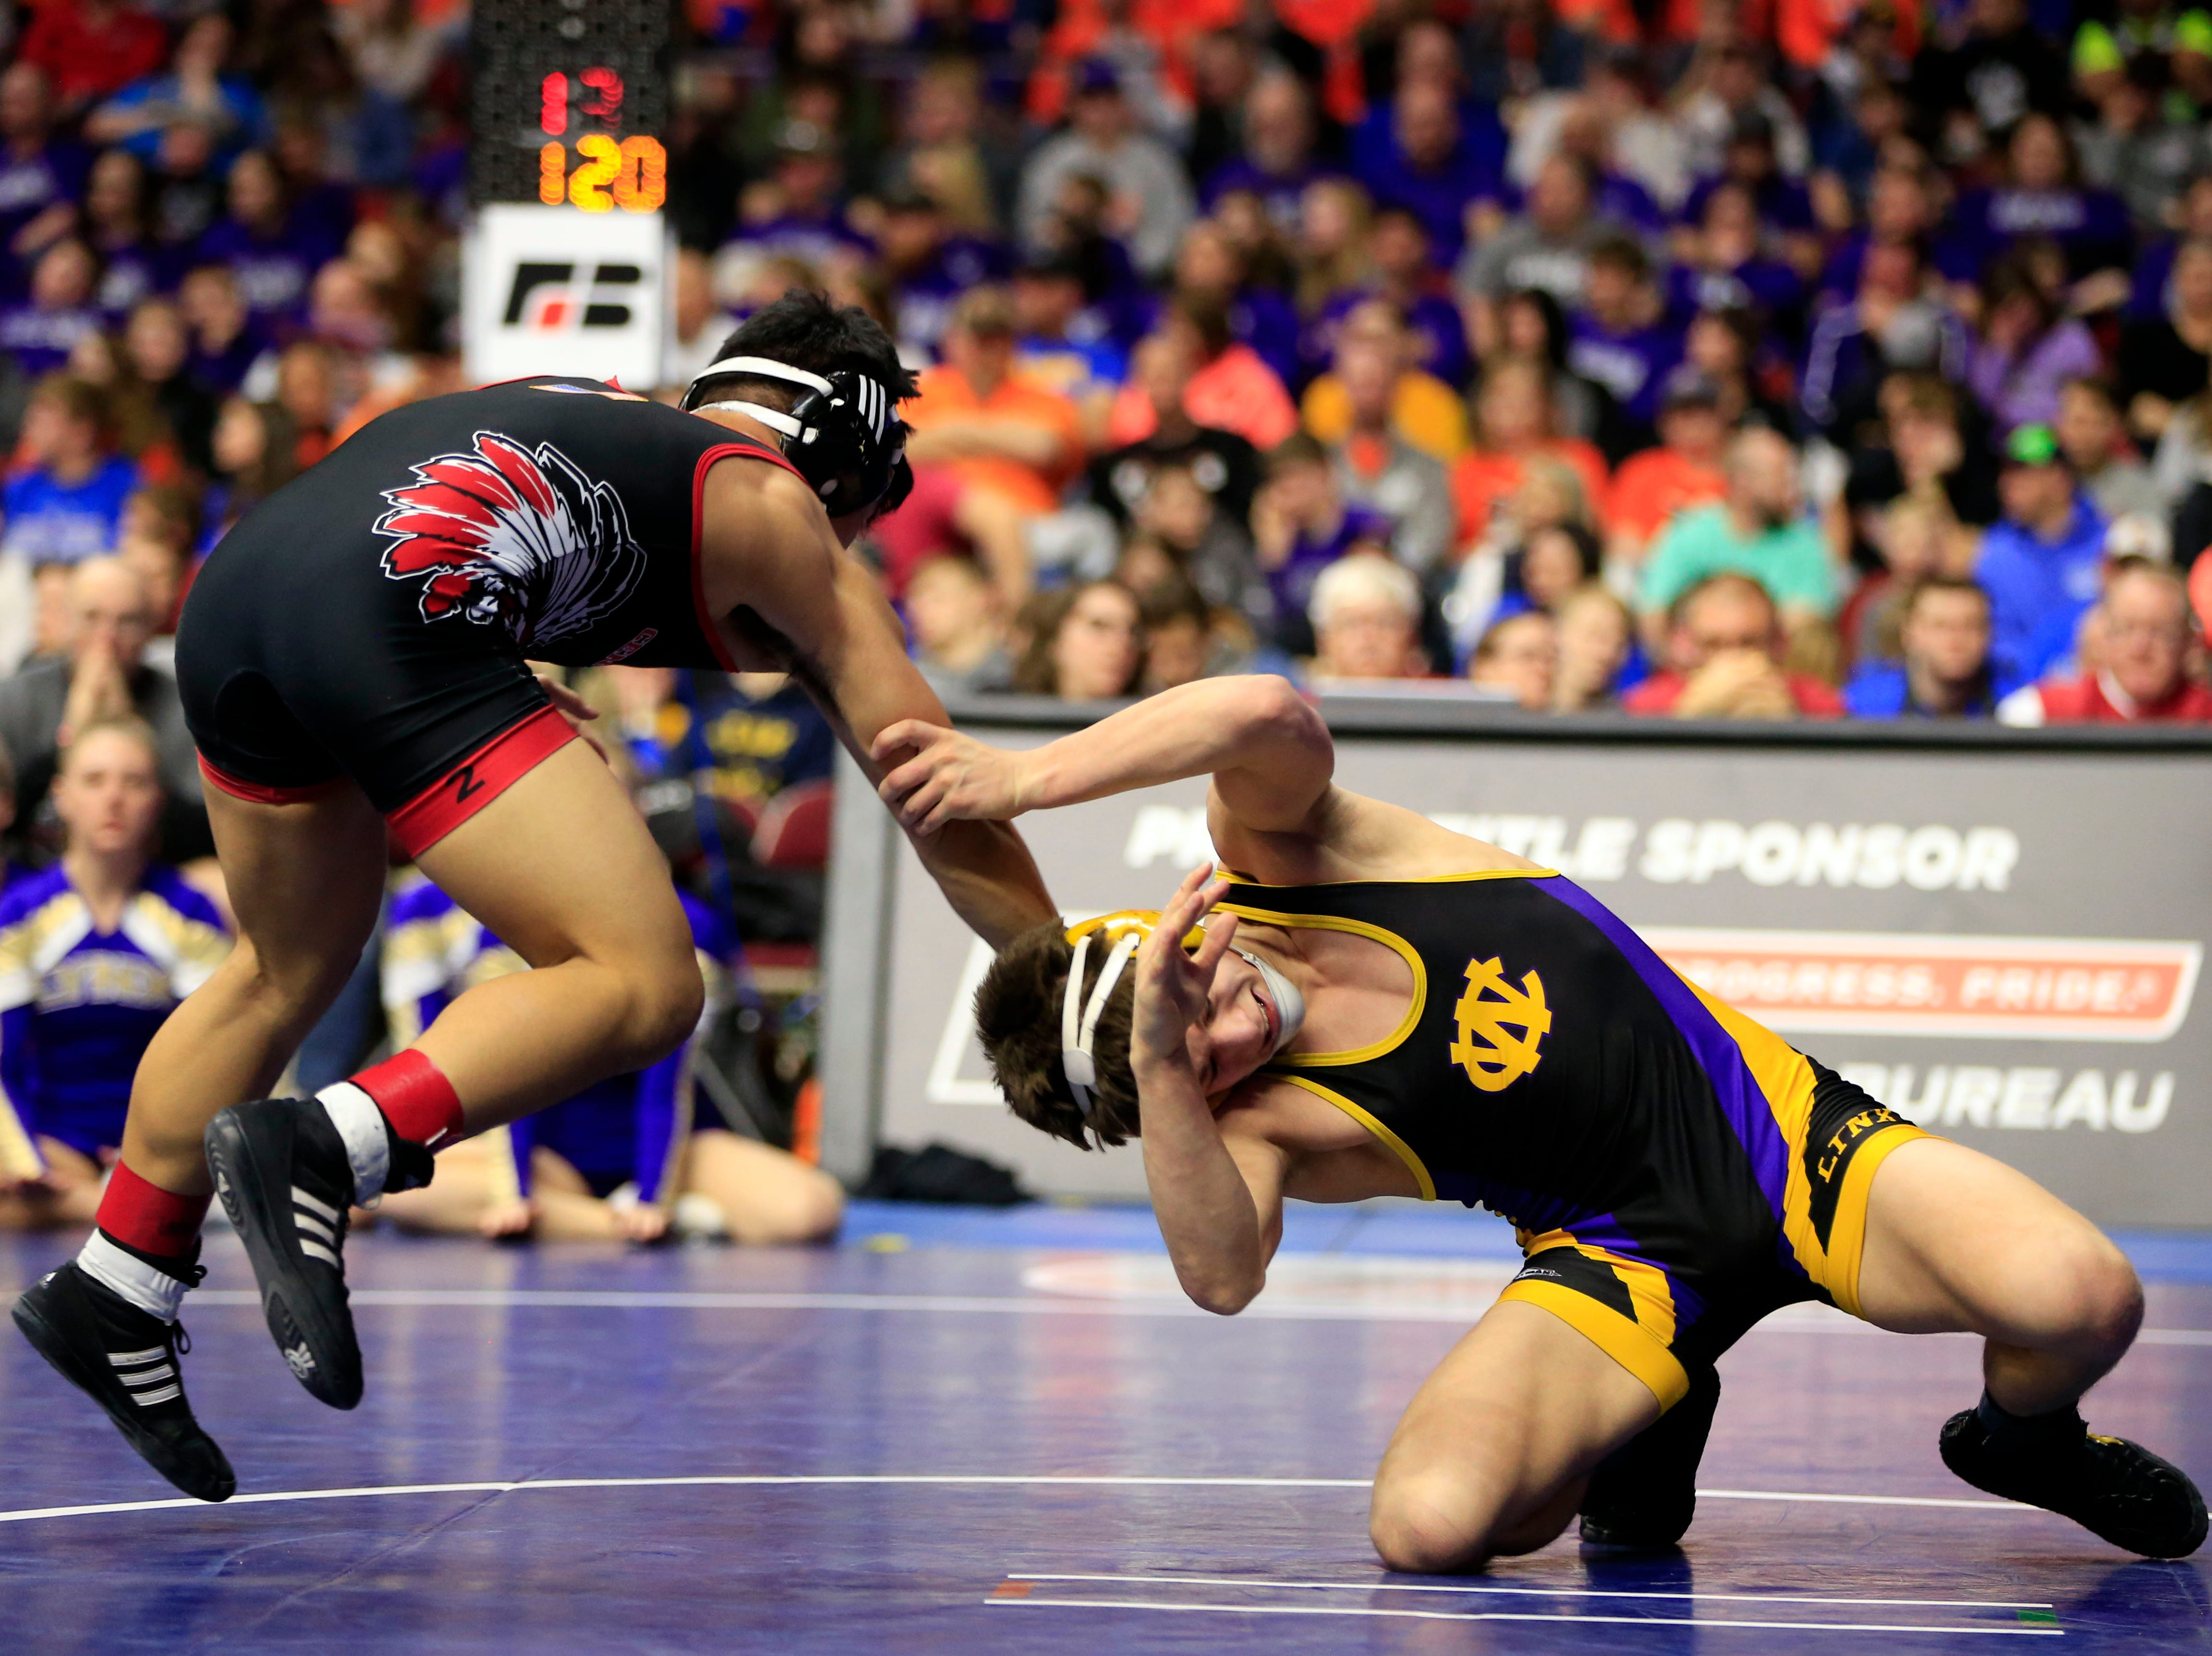 Drake Doolittle of Webster City beats Nathaniel Genobana of Centerville for the 2A state championship at 120 pounds Saturday, Feb. 16, 2019.